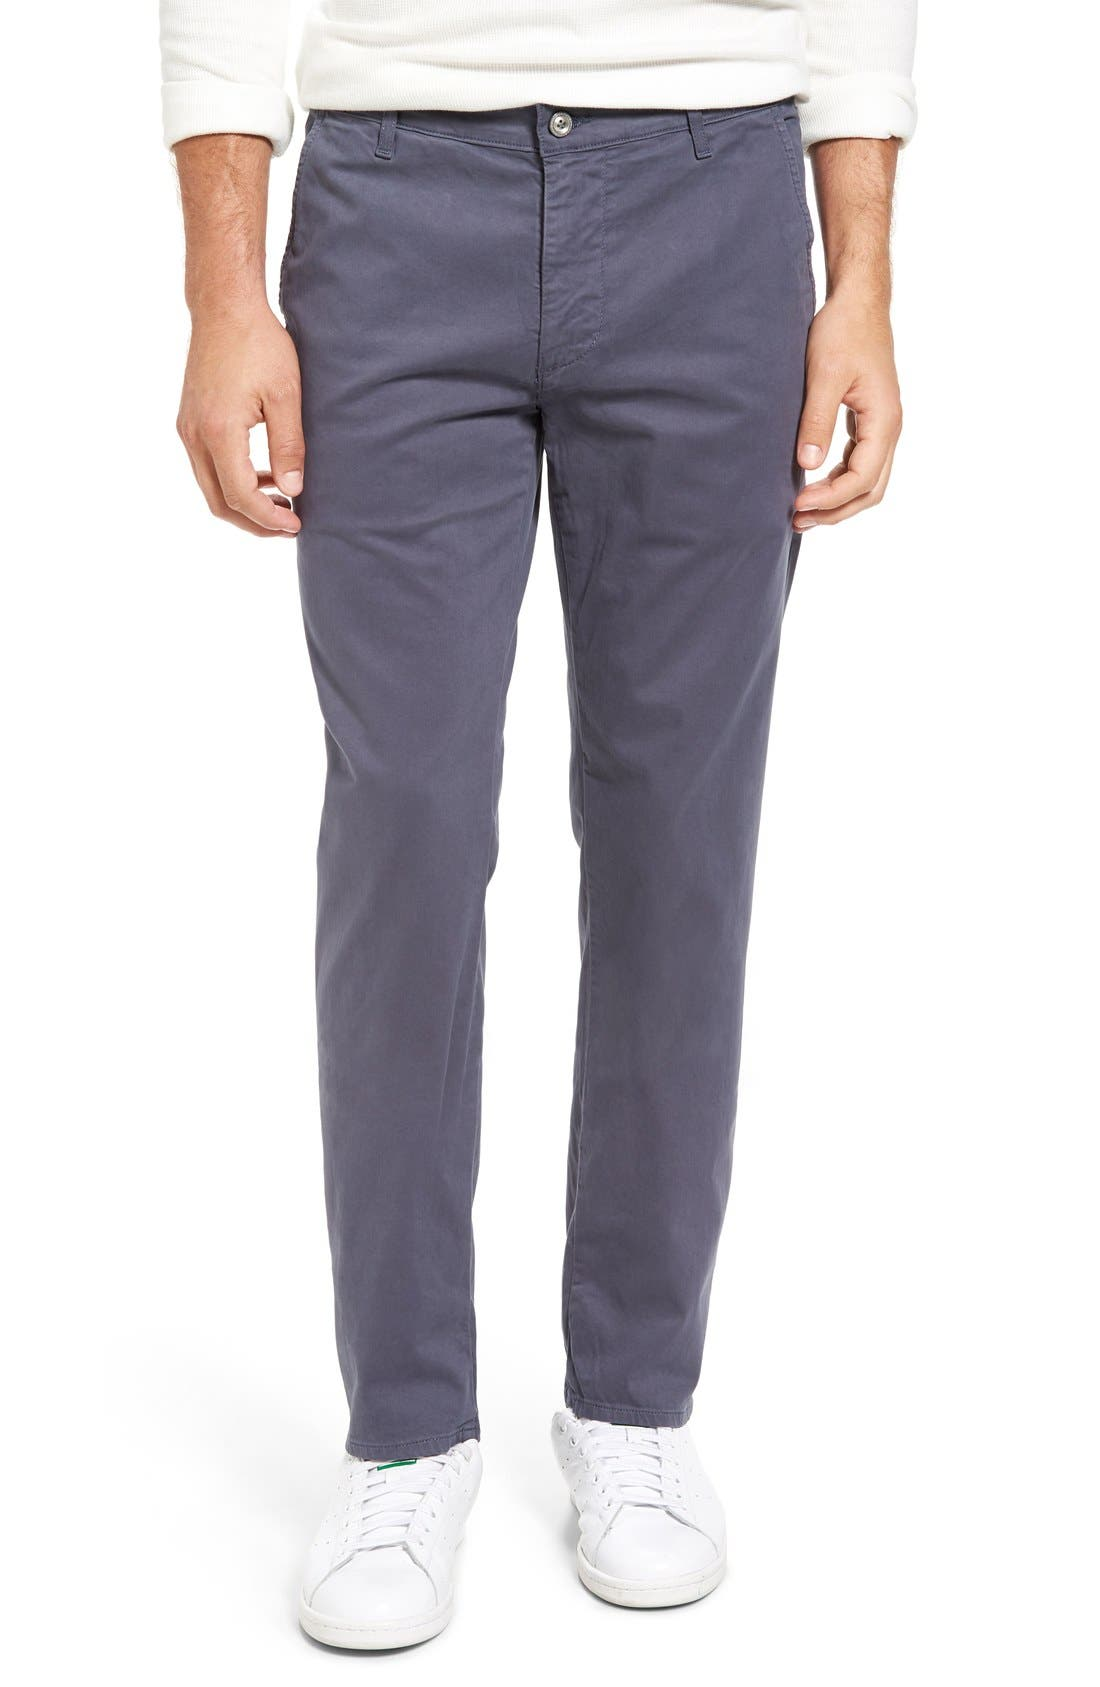 'The Lux' Tailored Straight Leg Chinos,                             Alternate thumbnail 23, color,